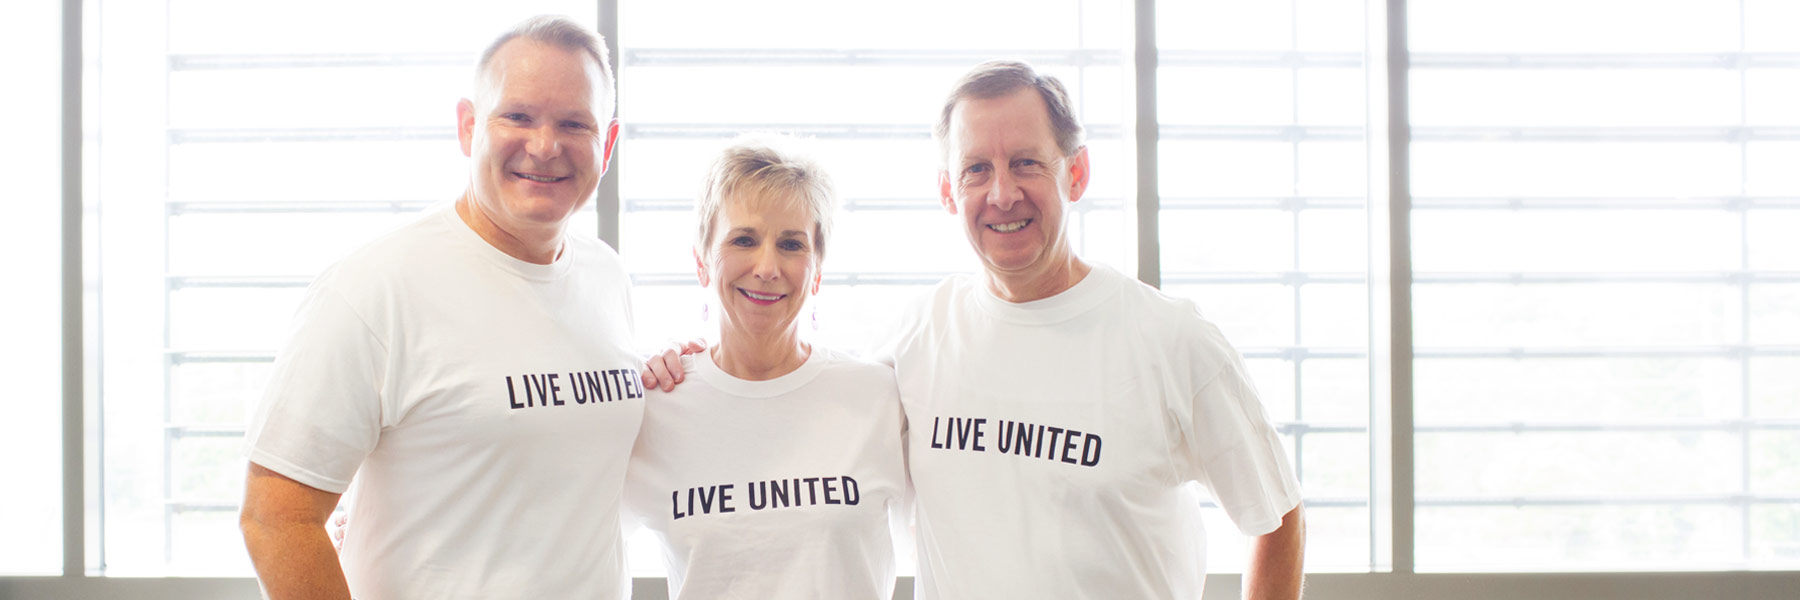 David Johnson, Deb Lemon, and Kirk White wearing T-shirts that say 'Live United'